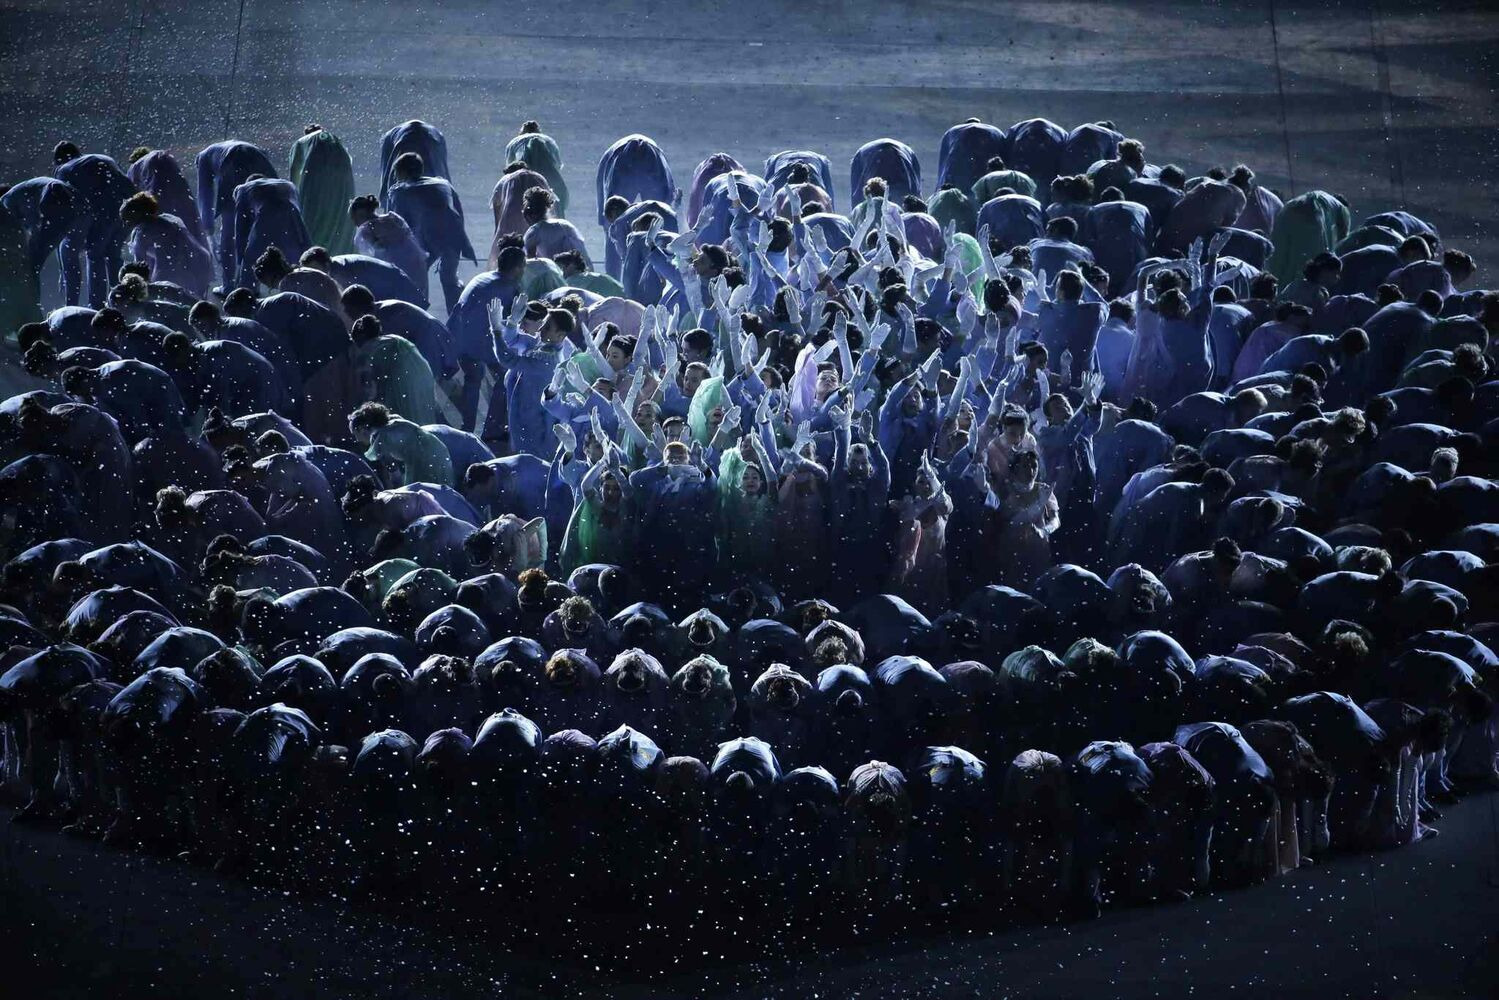 Artists perform during the opening ceremony of the 2014 Winter Olympics in Sochi, Russia, Friday, Feb. 7, 2014. (AP Photo/Charlie Riedel)